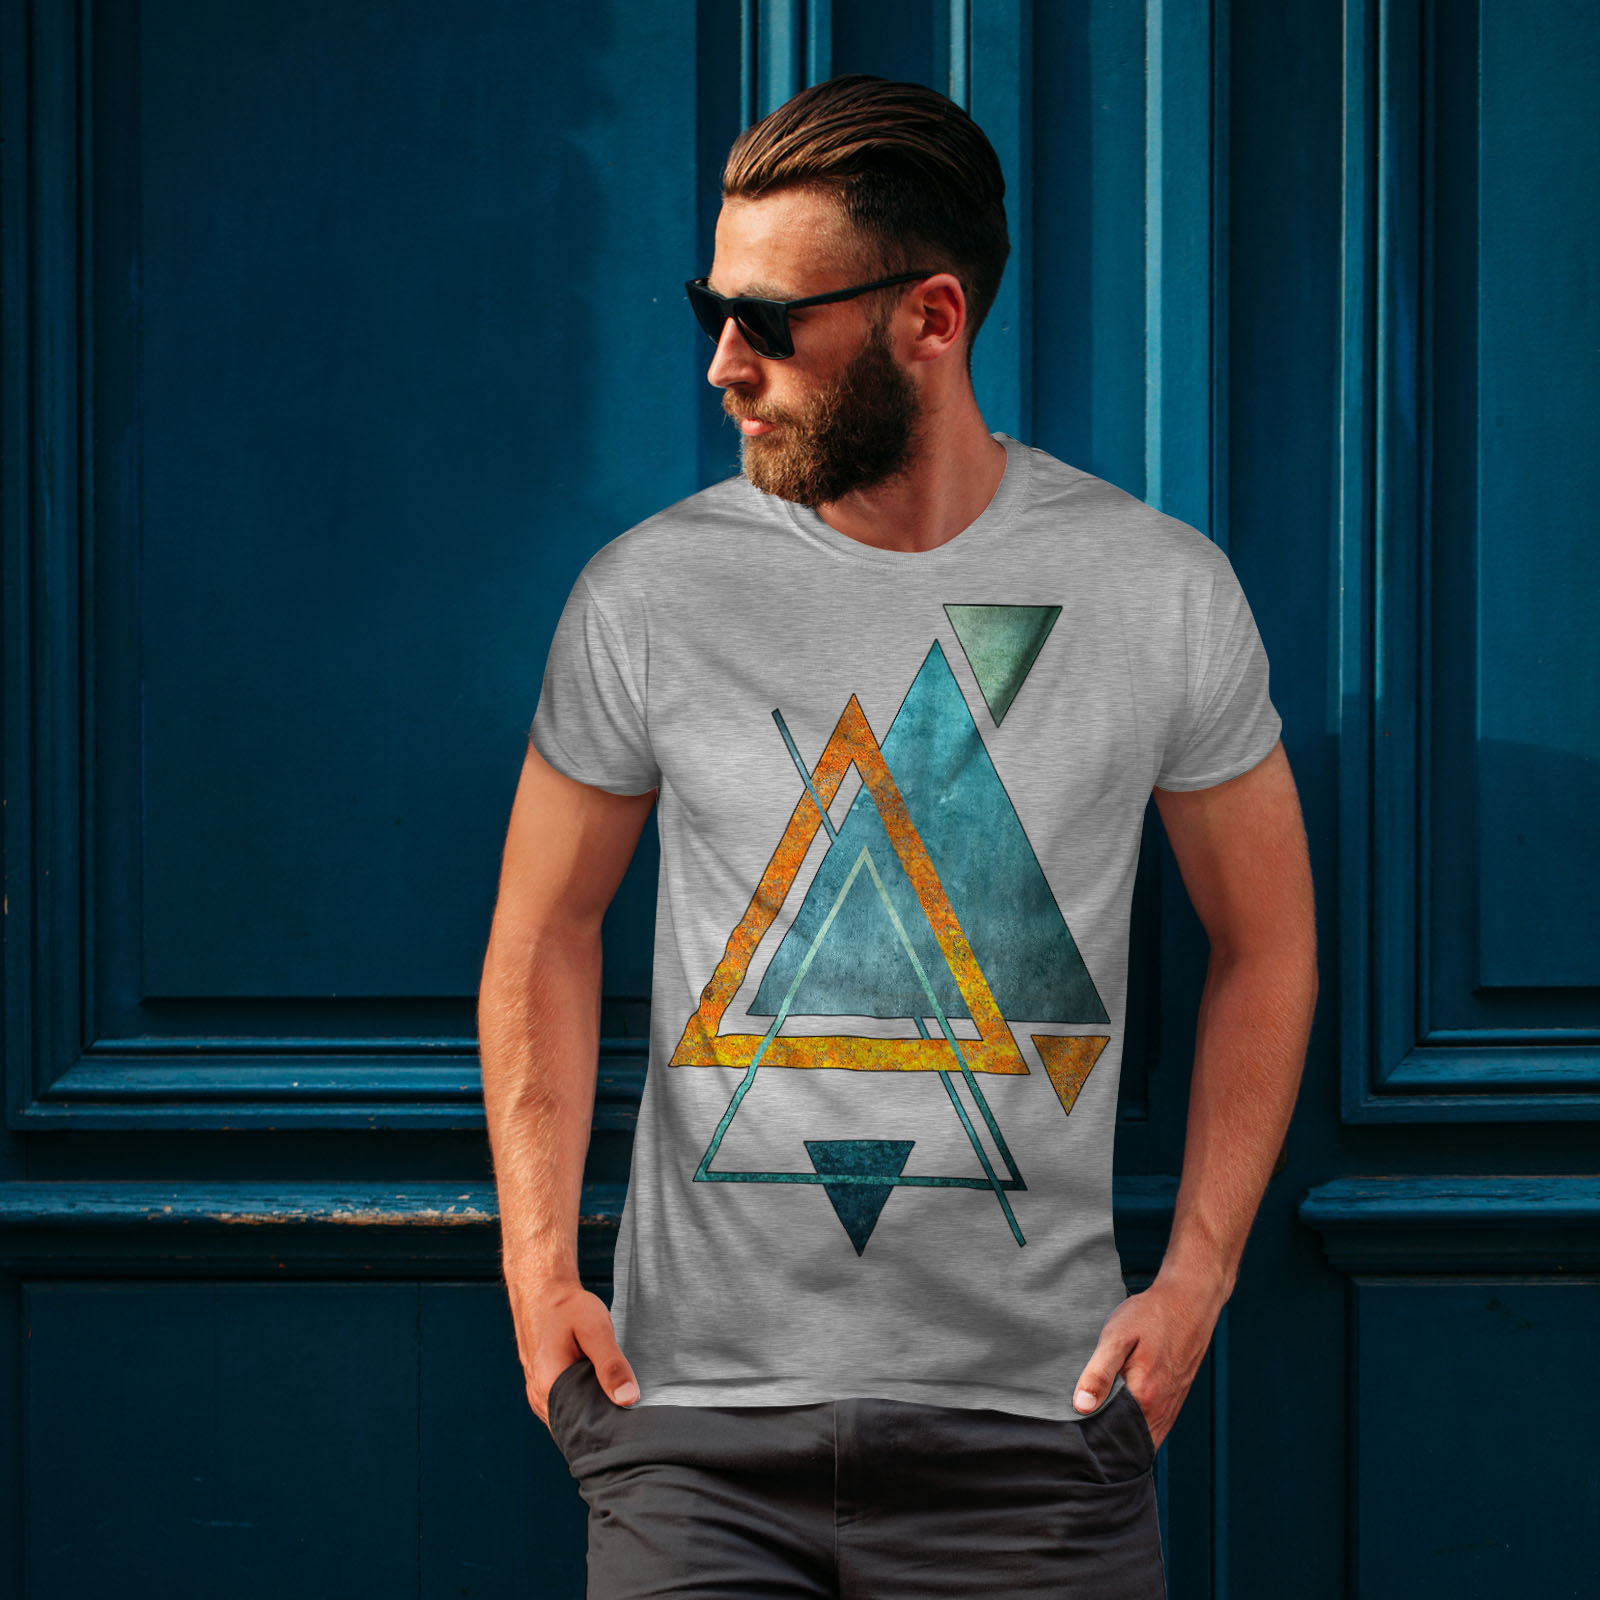 Wellcoda-Abstract-Triangle-T-shirt-homme-forme-design-graphique-imprime-Tee miniature 16